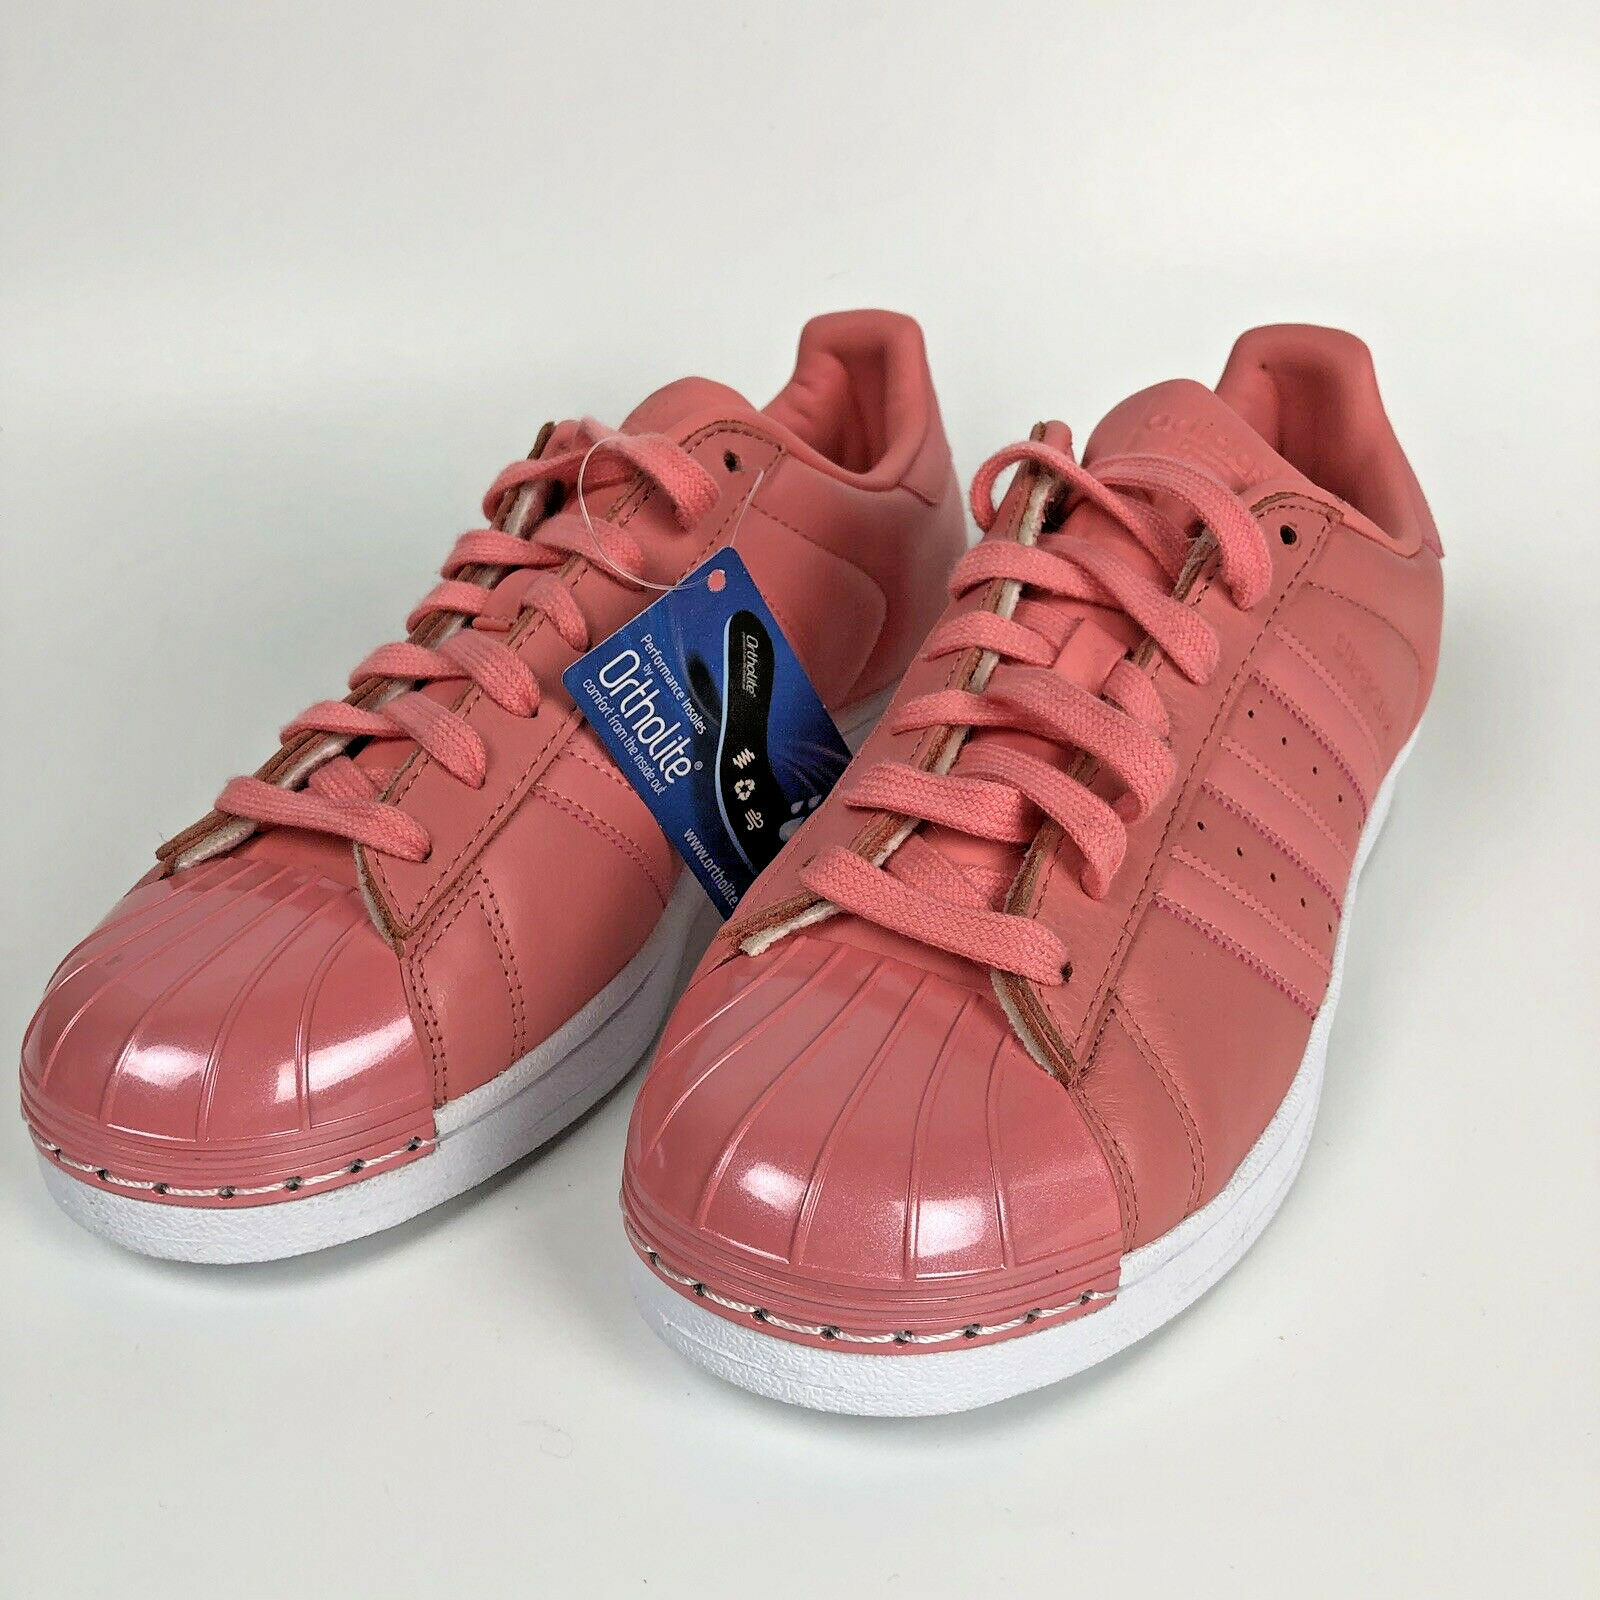 NEW Adidas Superstar Superstar Superstar US 10 Metal Shell Toe Tactile pink Pink shoes Sneakers 95ed99